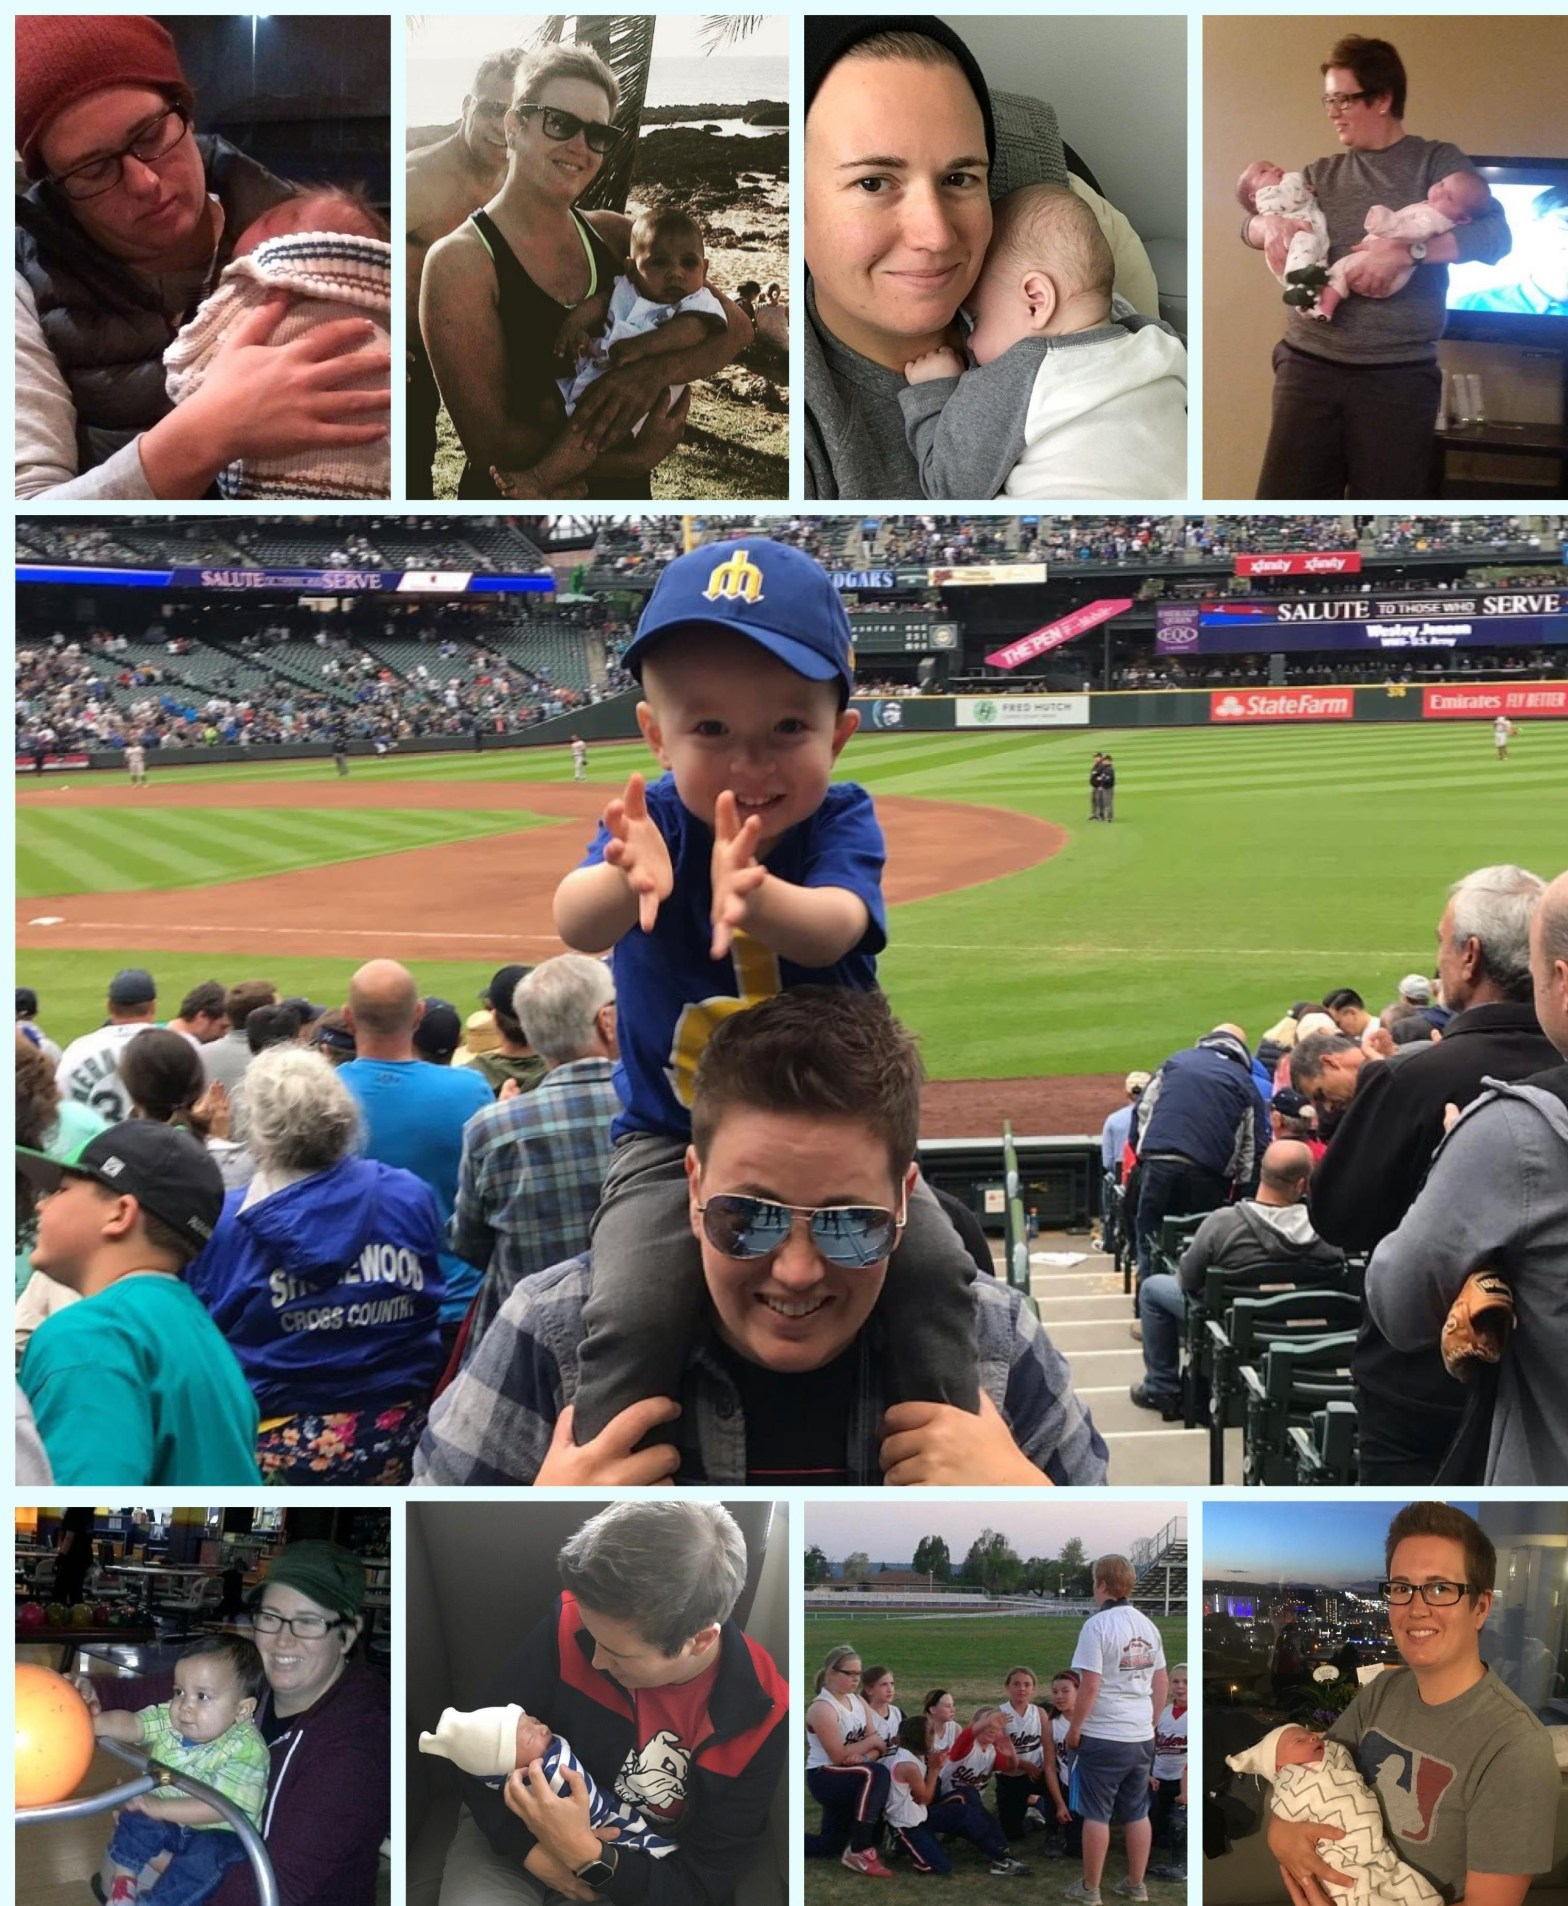 Image compilation of butch lesbian enjoying time with various babies and children as part of her pregnancy journey